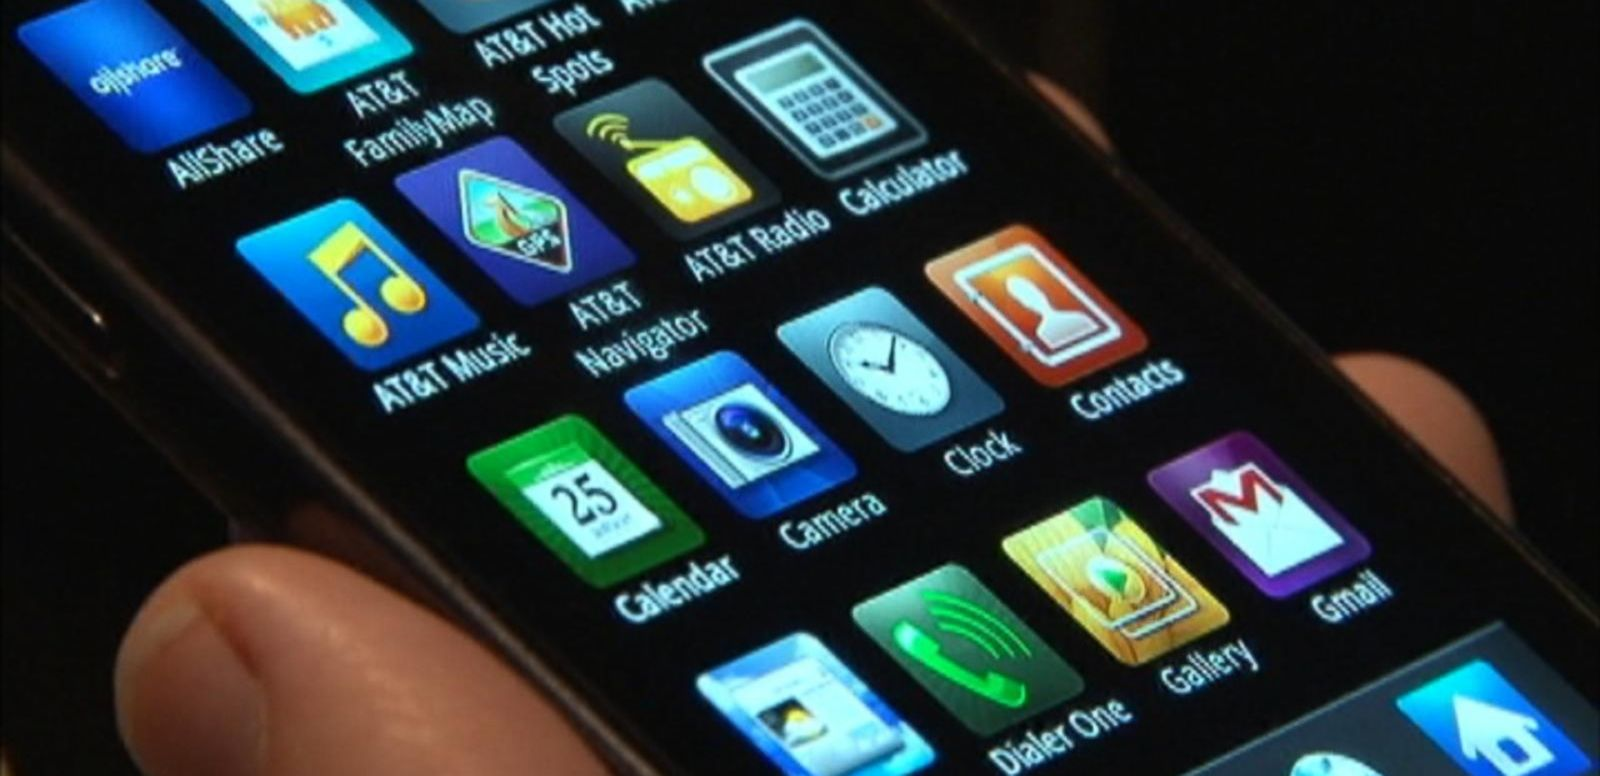 VIDEO: Android Devices May Be at Risk of Potential Software Vulnerabilities